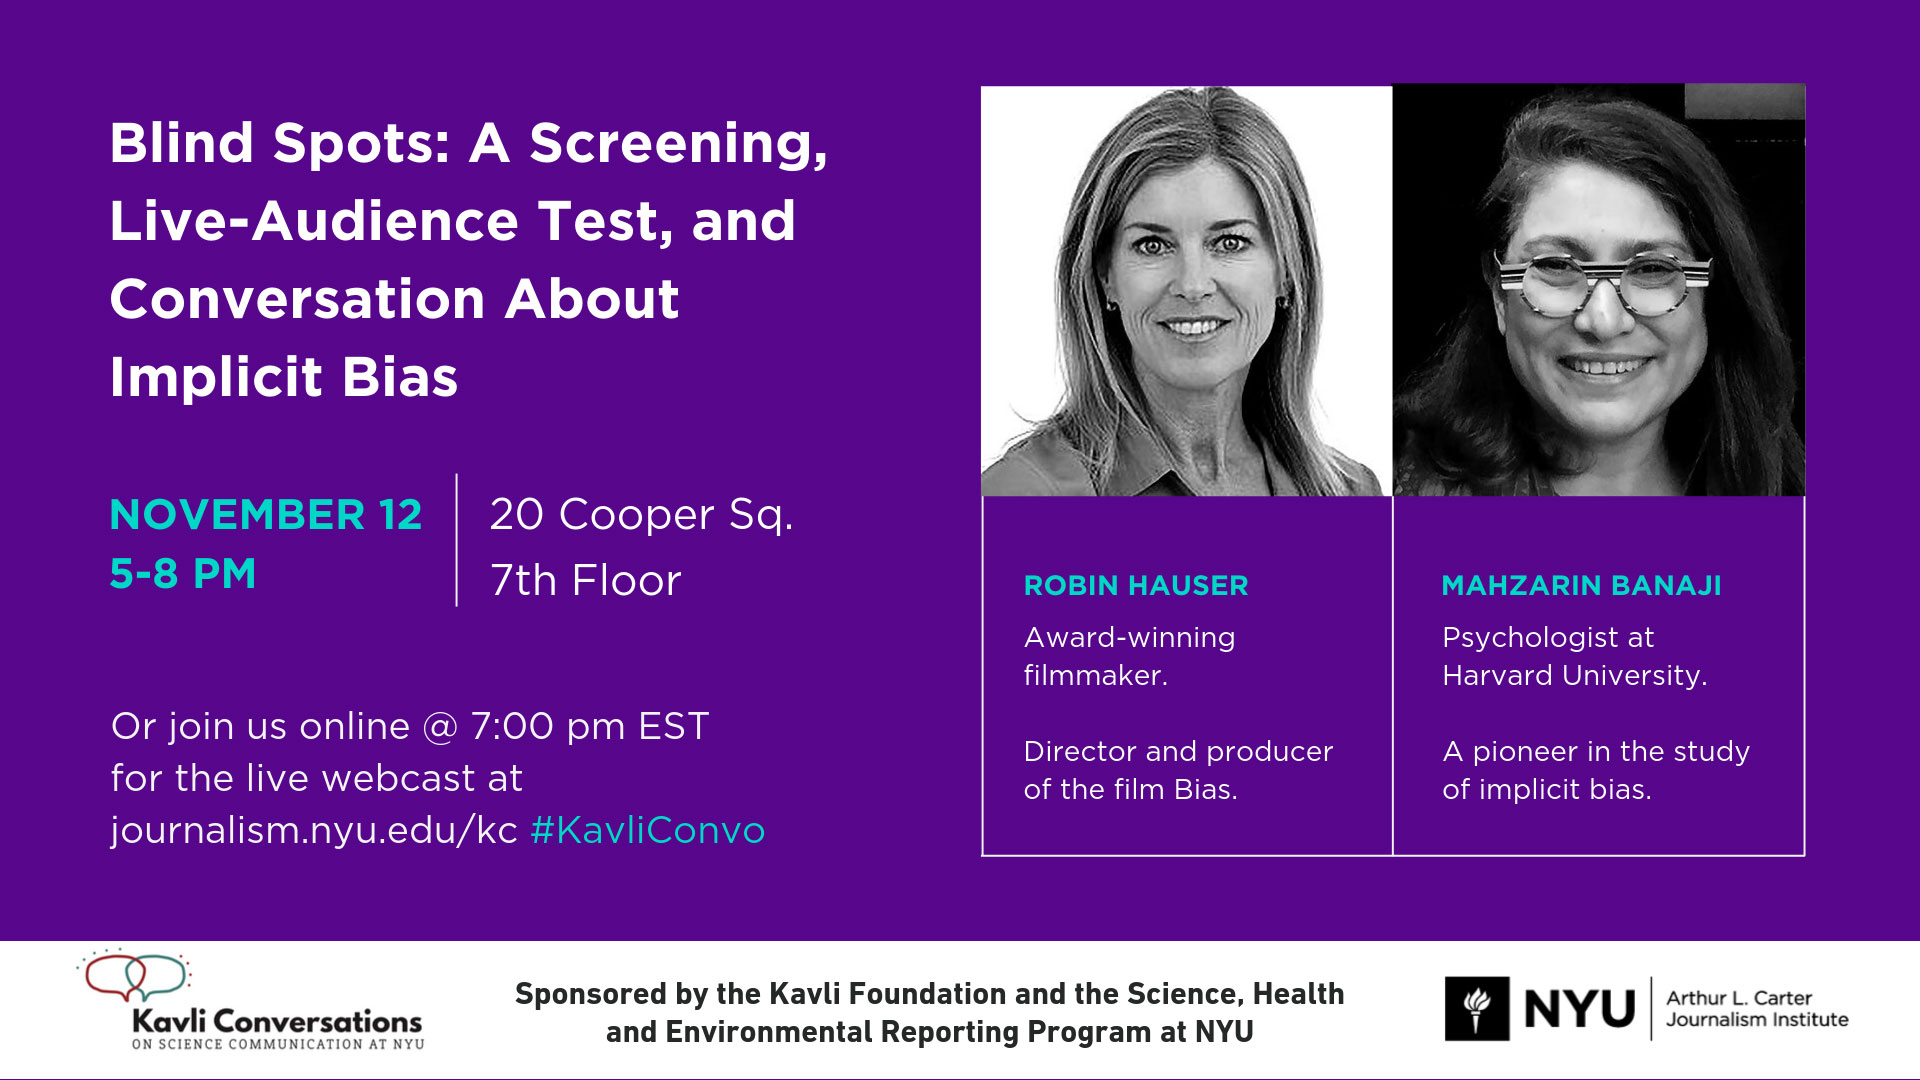 Blind Spots: A Screening, Live-Audience Test, and Conversation About Implicit Bias - Event Poster (read web page for details)